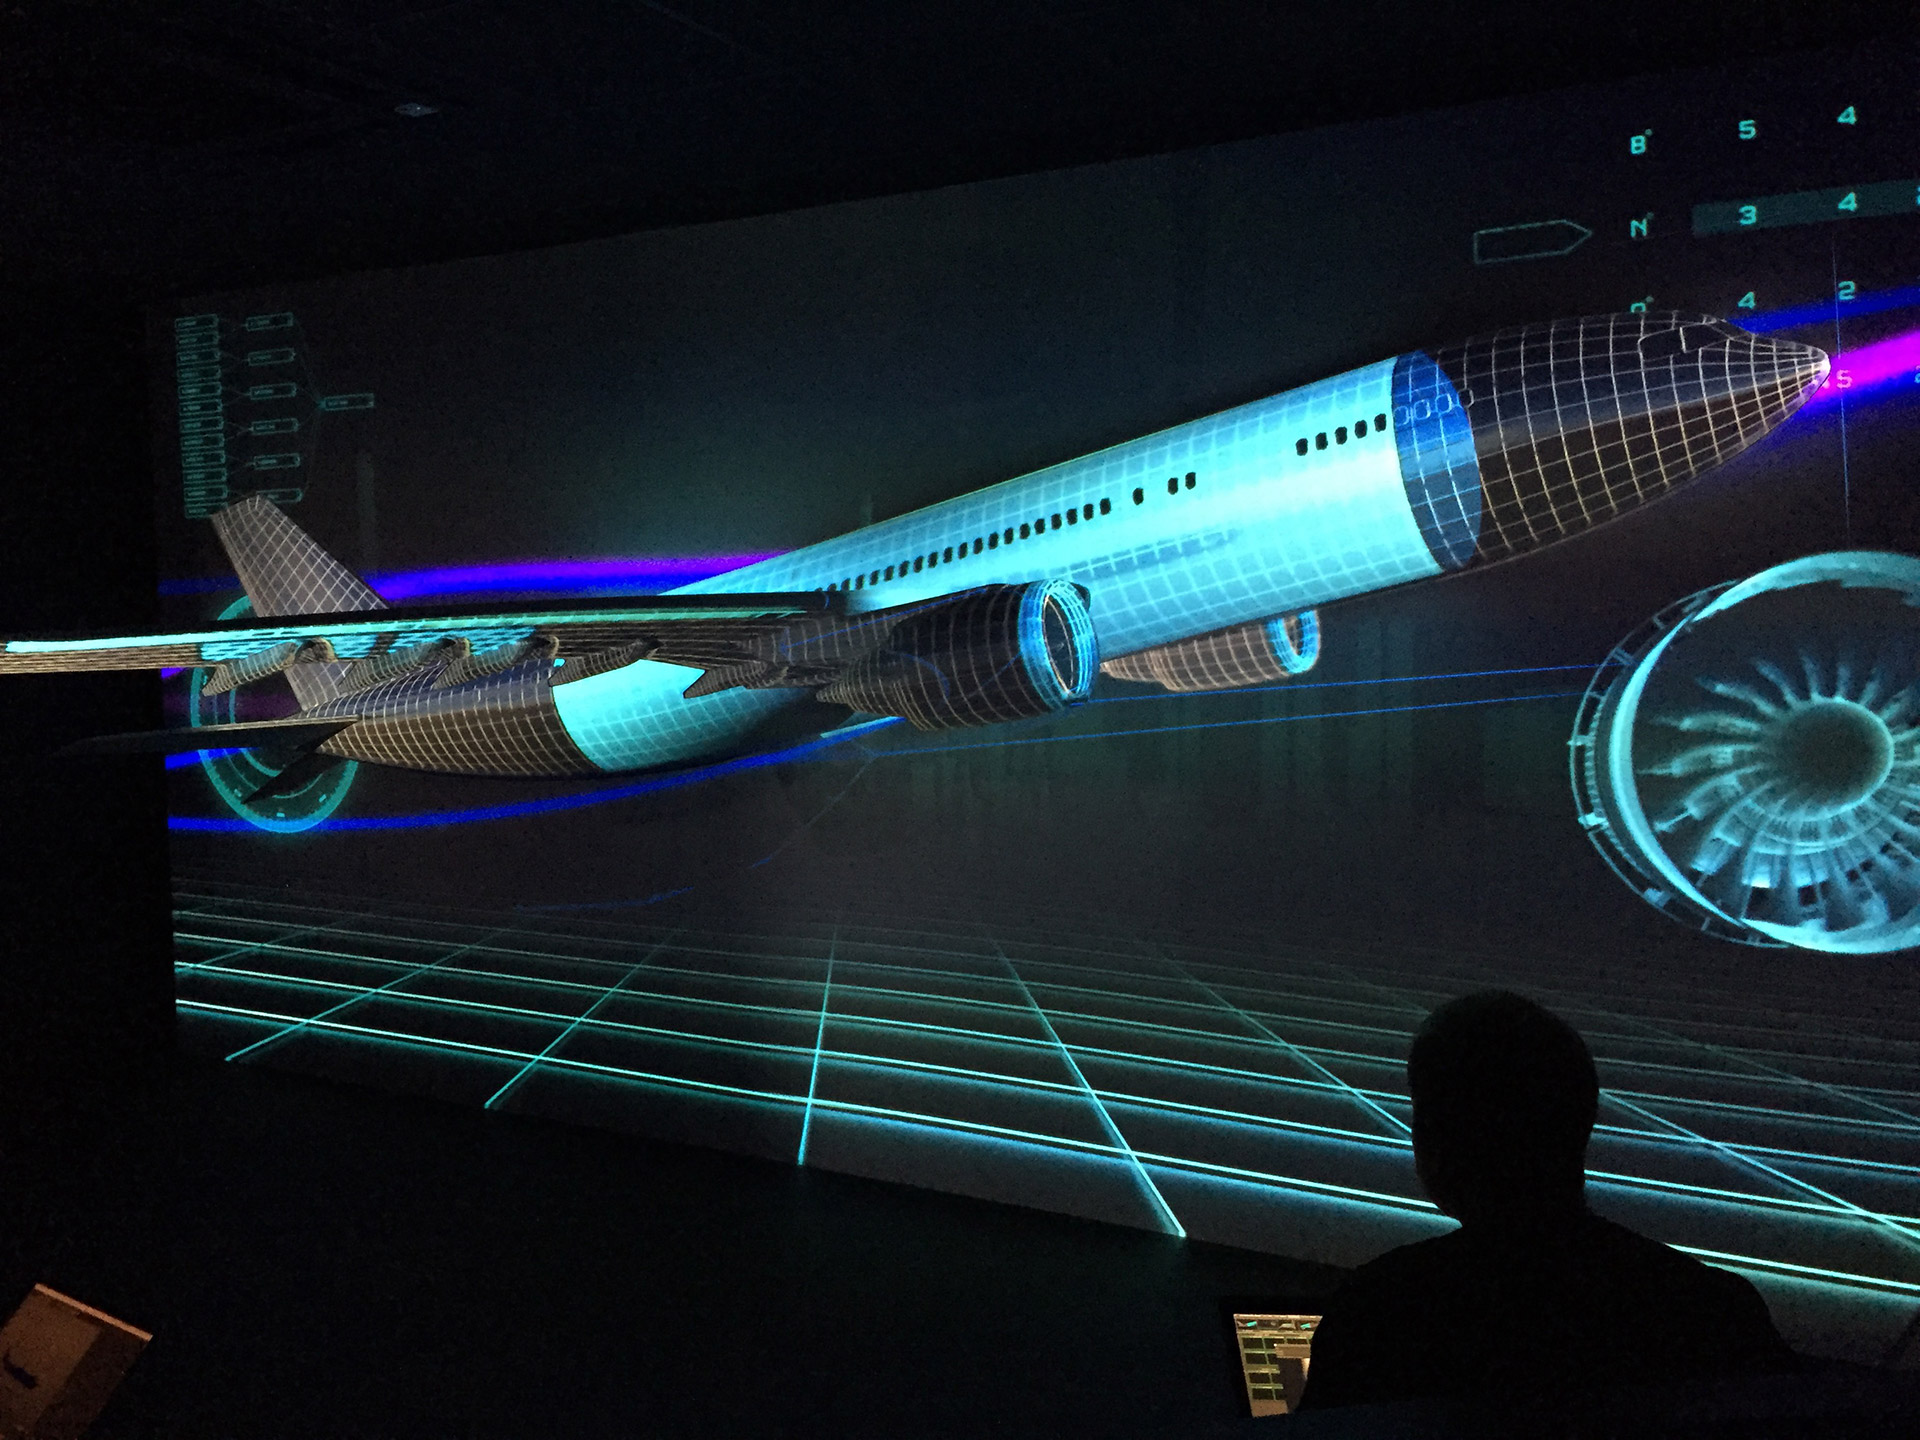 GKN Pavilion at Farnborough International Airshow 2016, 3D Projection mapping graphics by Ouno Creative, Hampshire.